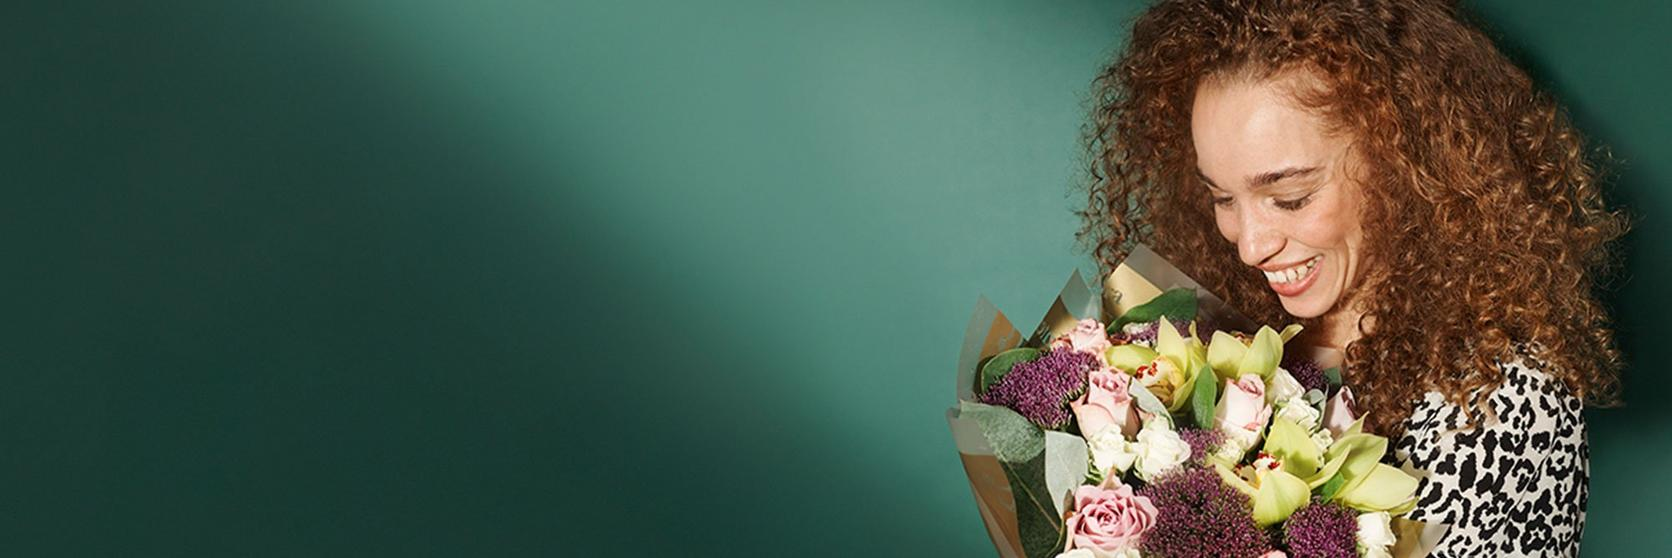 mothers-day-banner-optimised-x2